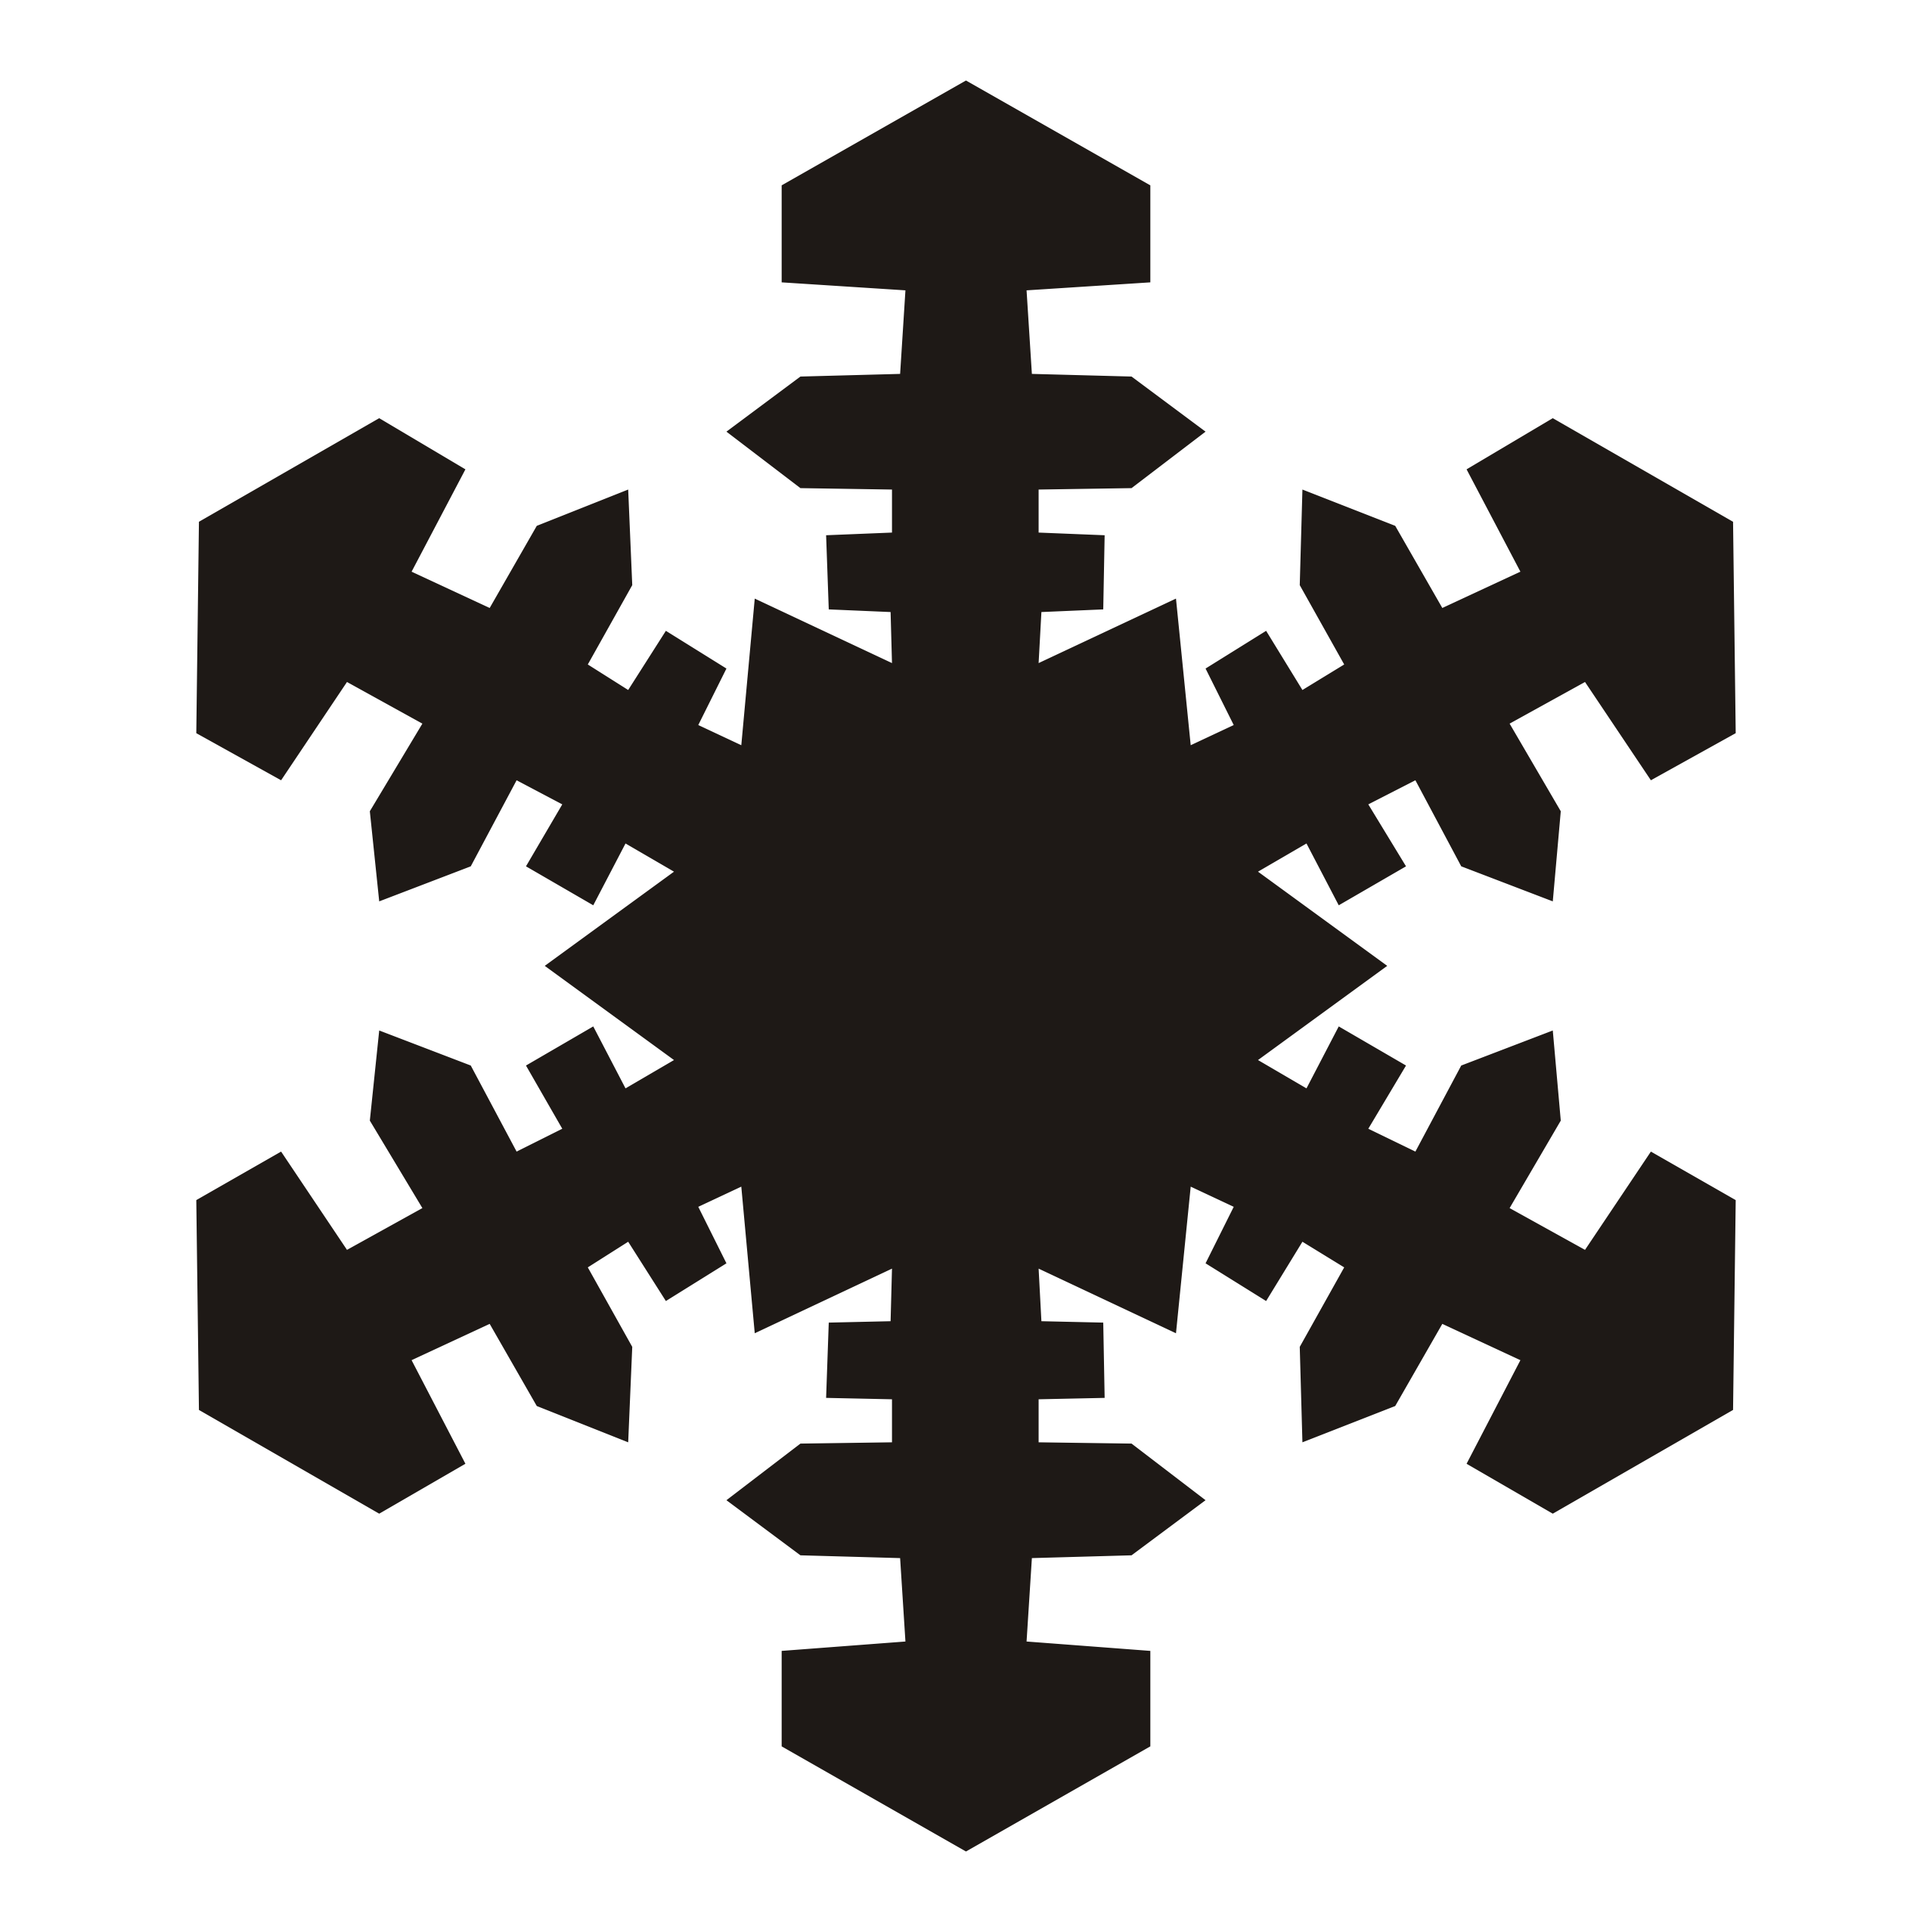 Red snowflake clipart free images